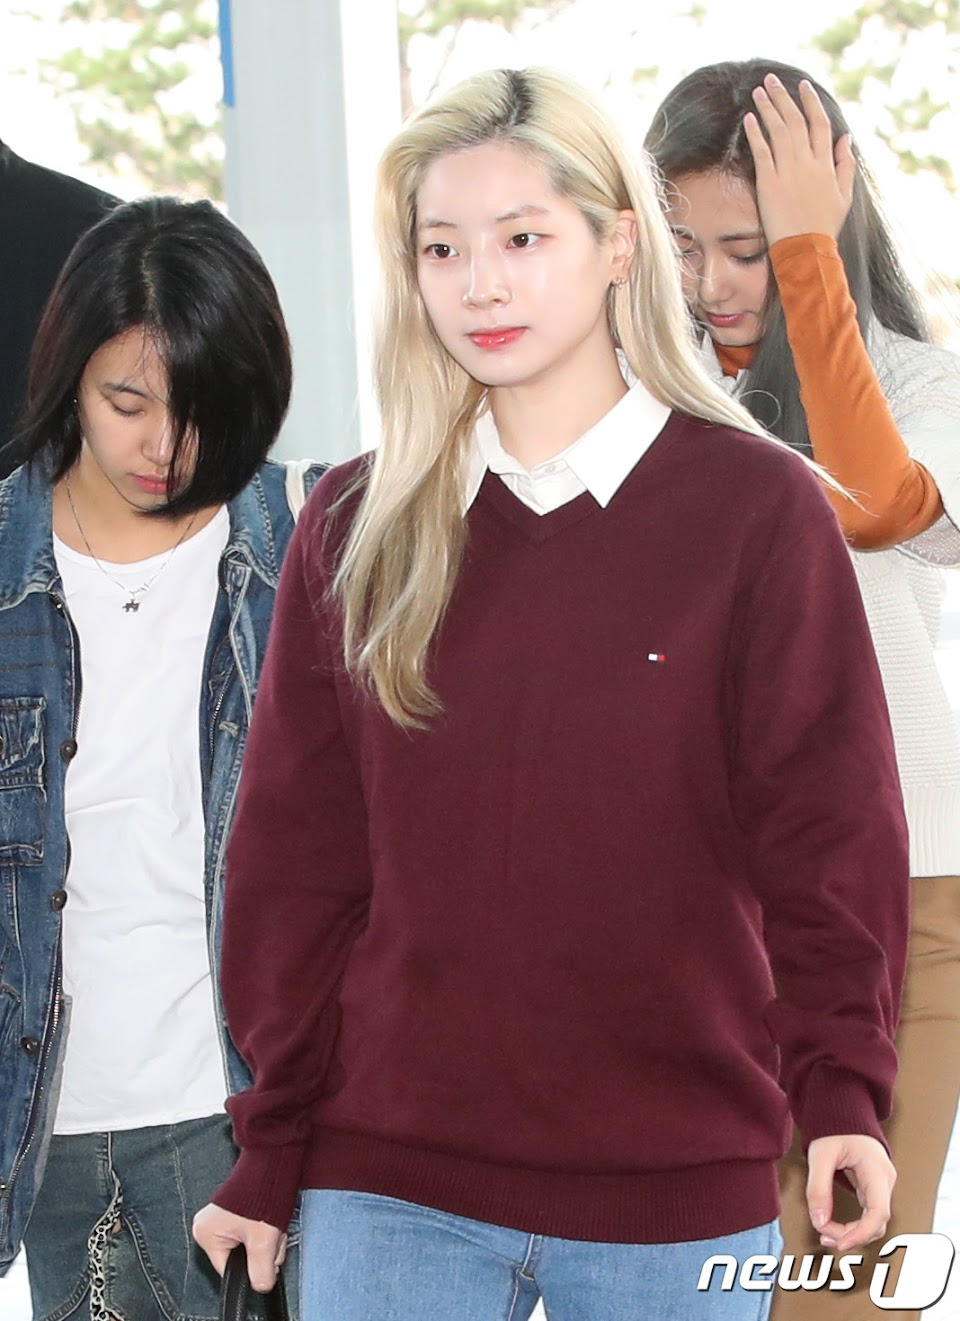 twice dahyun makeup free 1